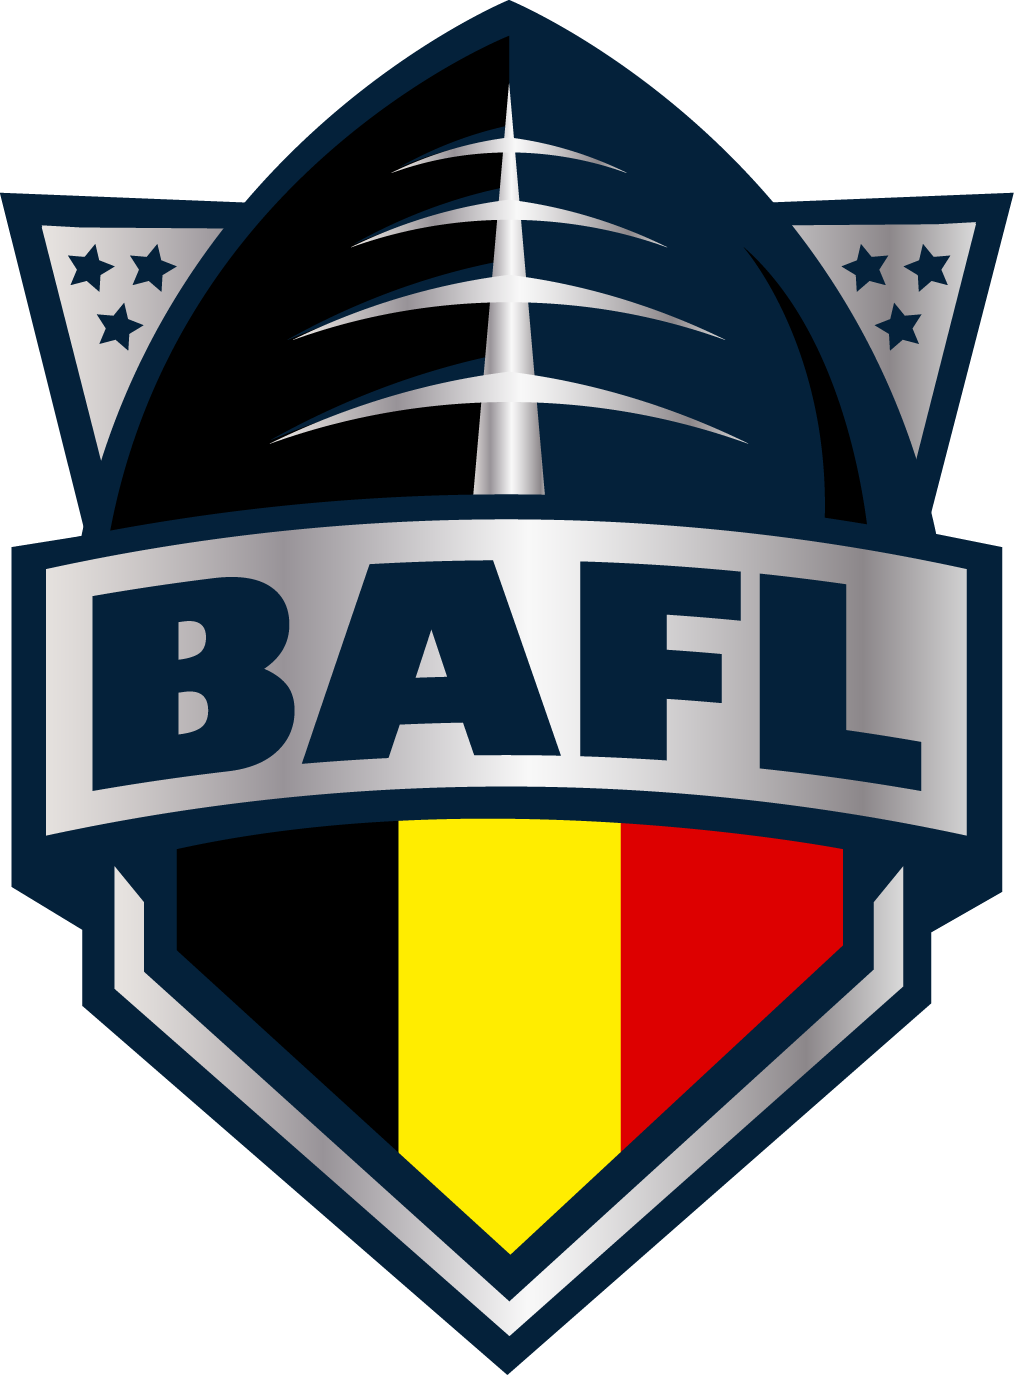 BAFL – Belgian American Football League